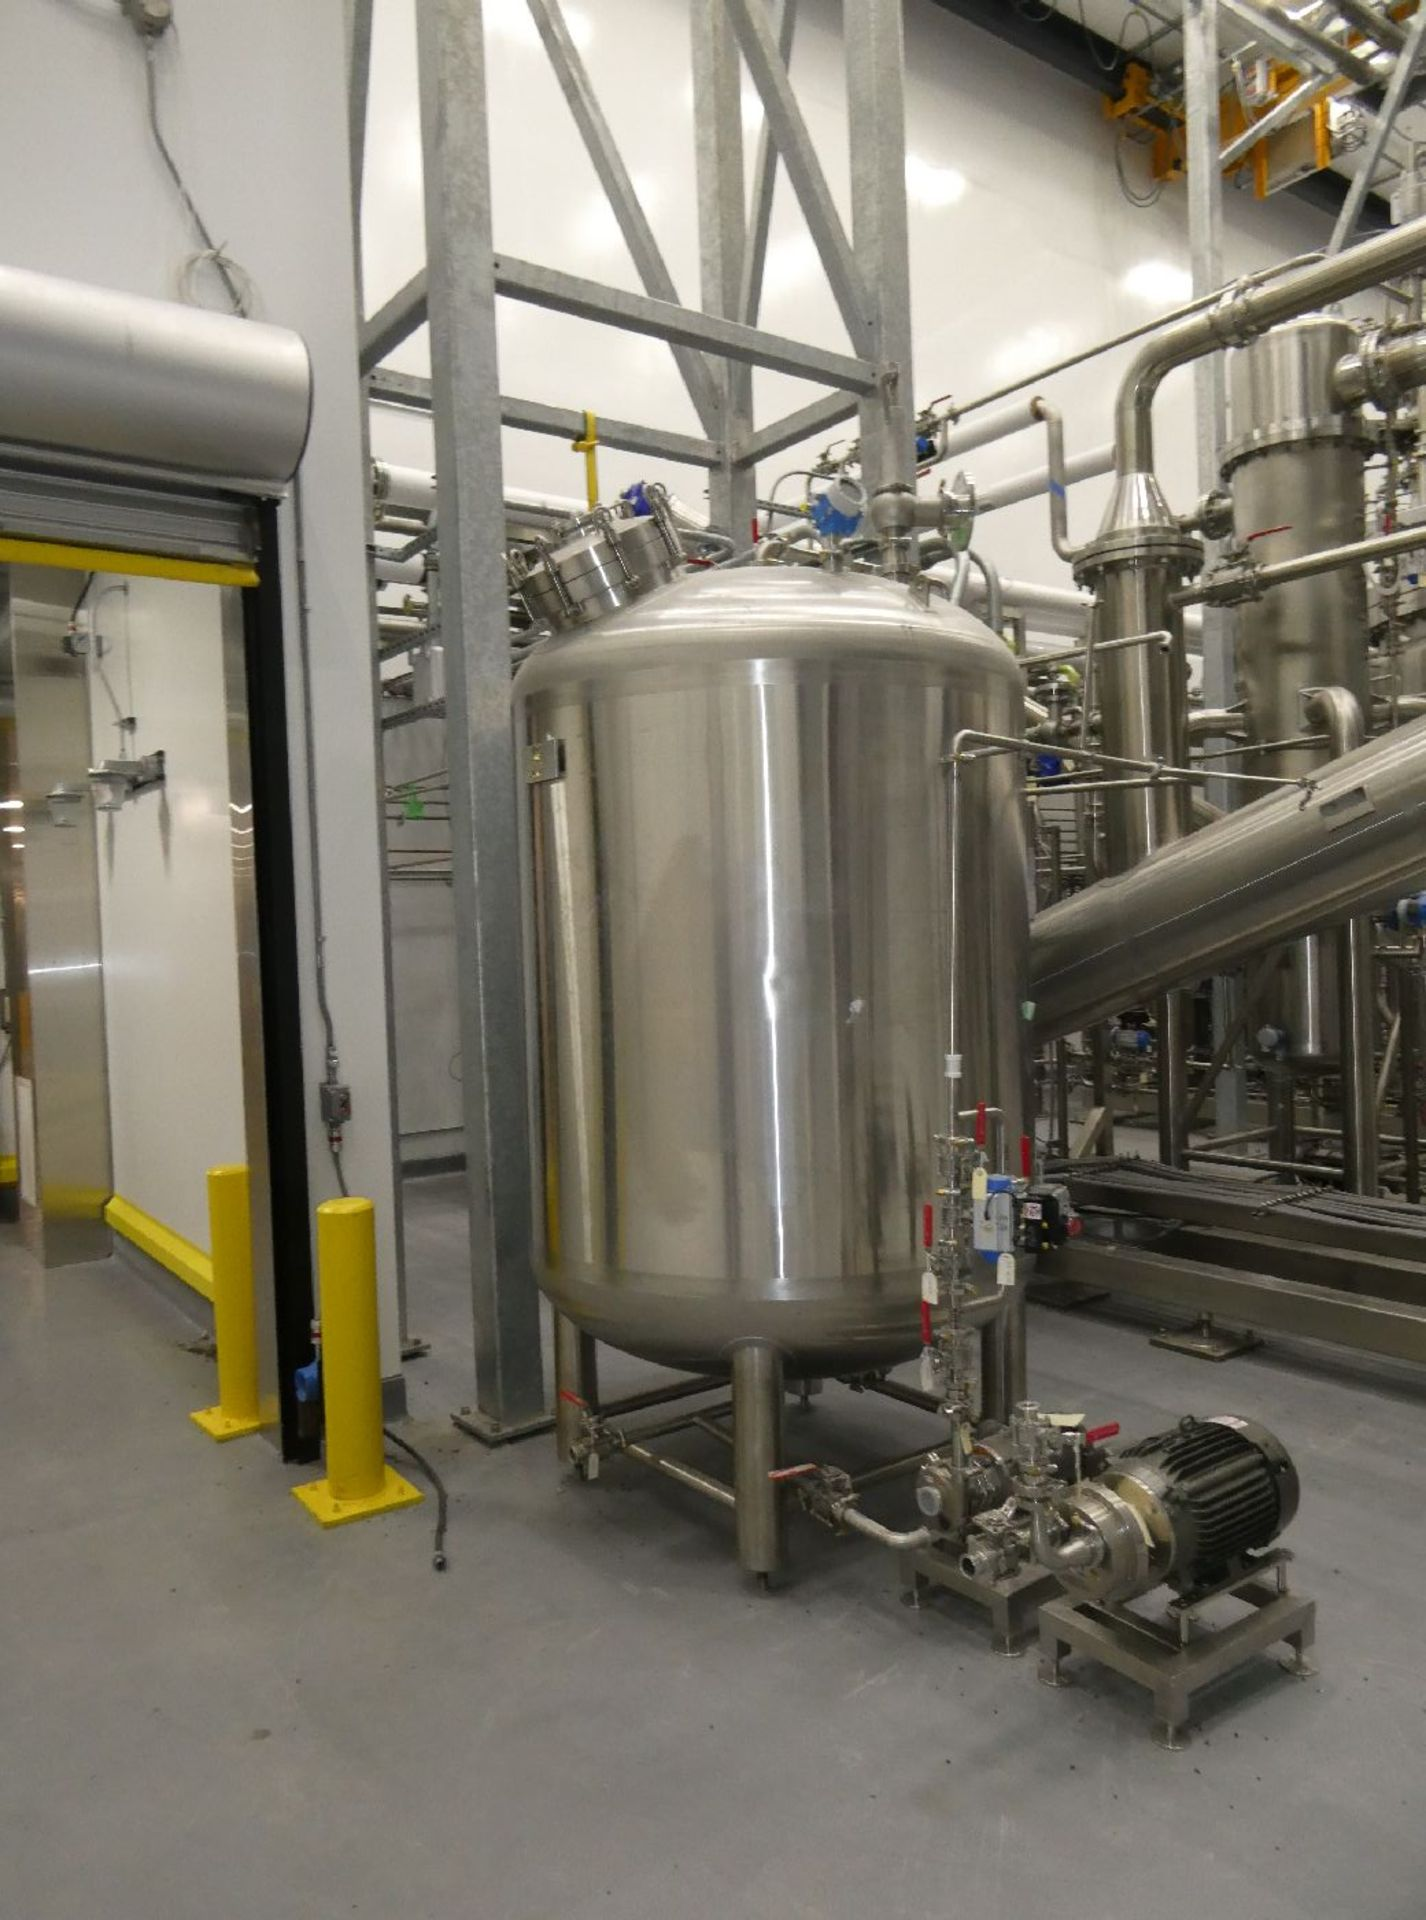 ROTAX Closed Loop Solvent Based Continuous Oil Extraction System - Image 3 of 68